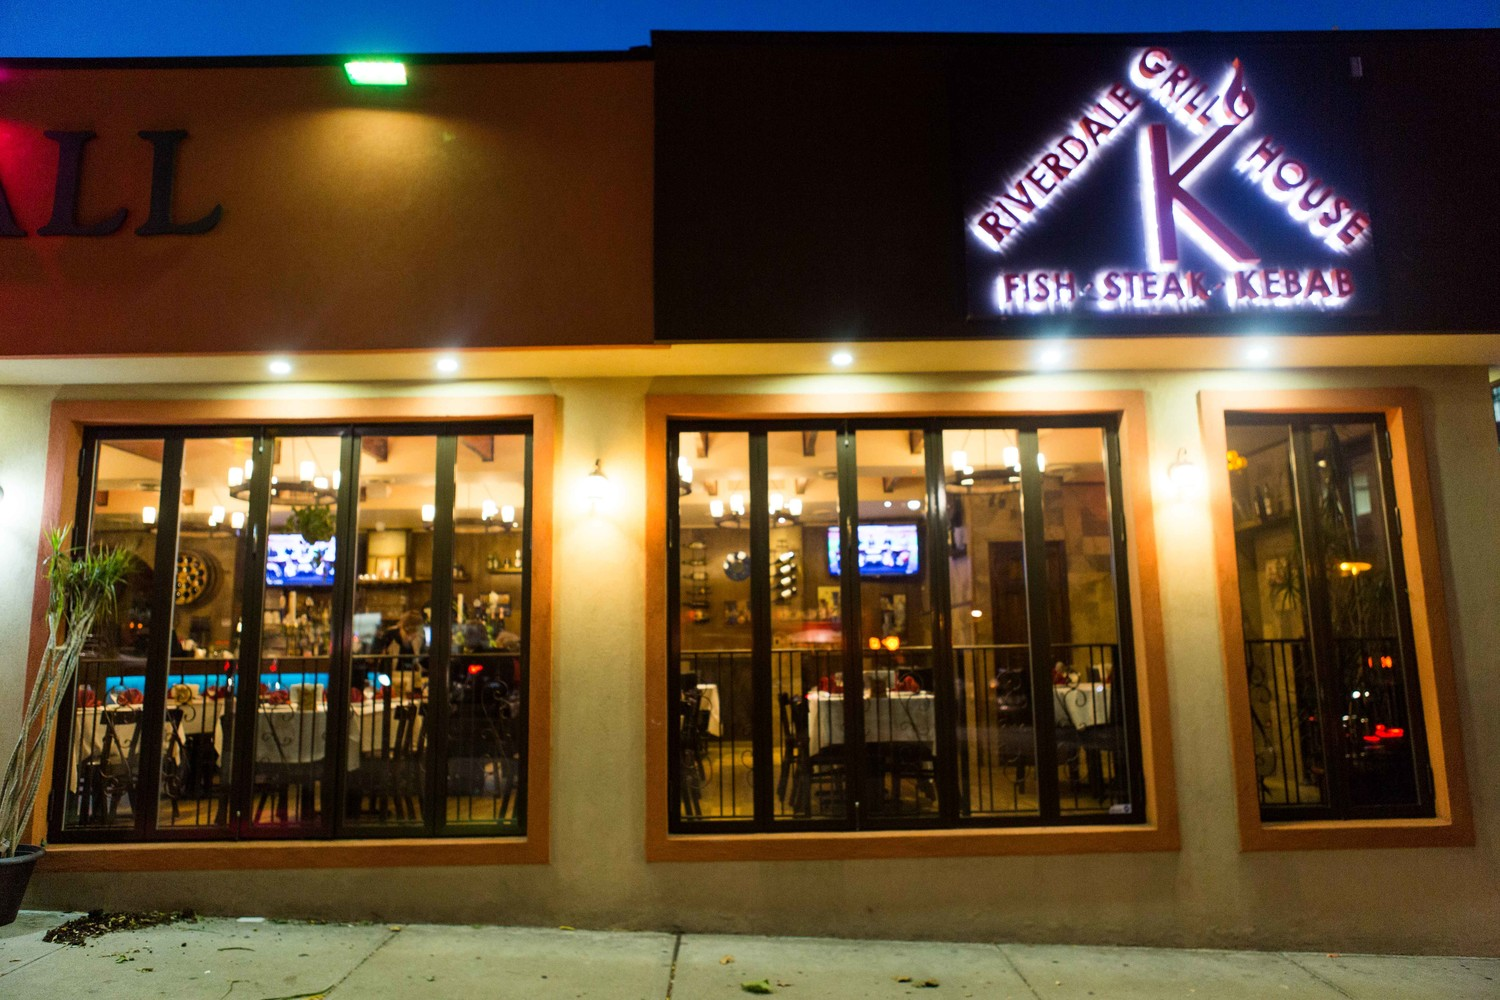 Dmitriy Berezovskiy, owner of North Riverdale's high-end glatt kosher K Grill House, filed a lawsuit against his landlord, Moses Marx, and the local rabbinical council alleging they tried drive him out of business — because, among other reasons, his wife isn't Jewish.